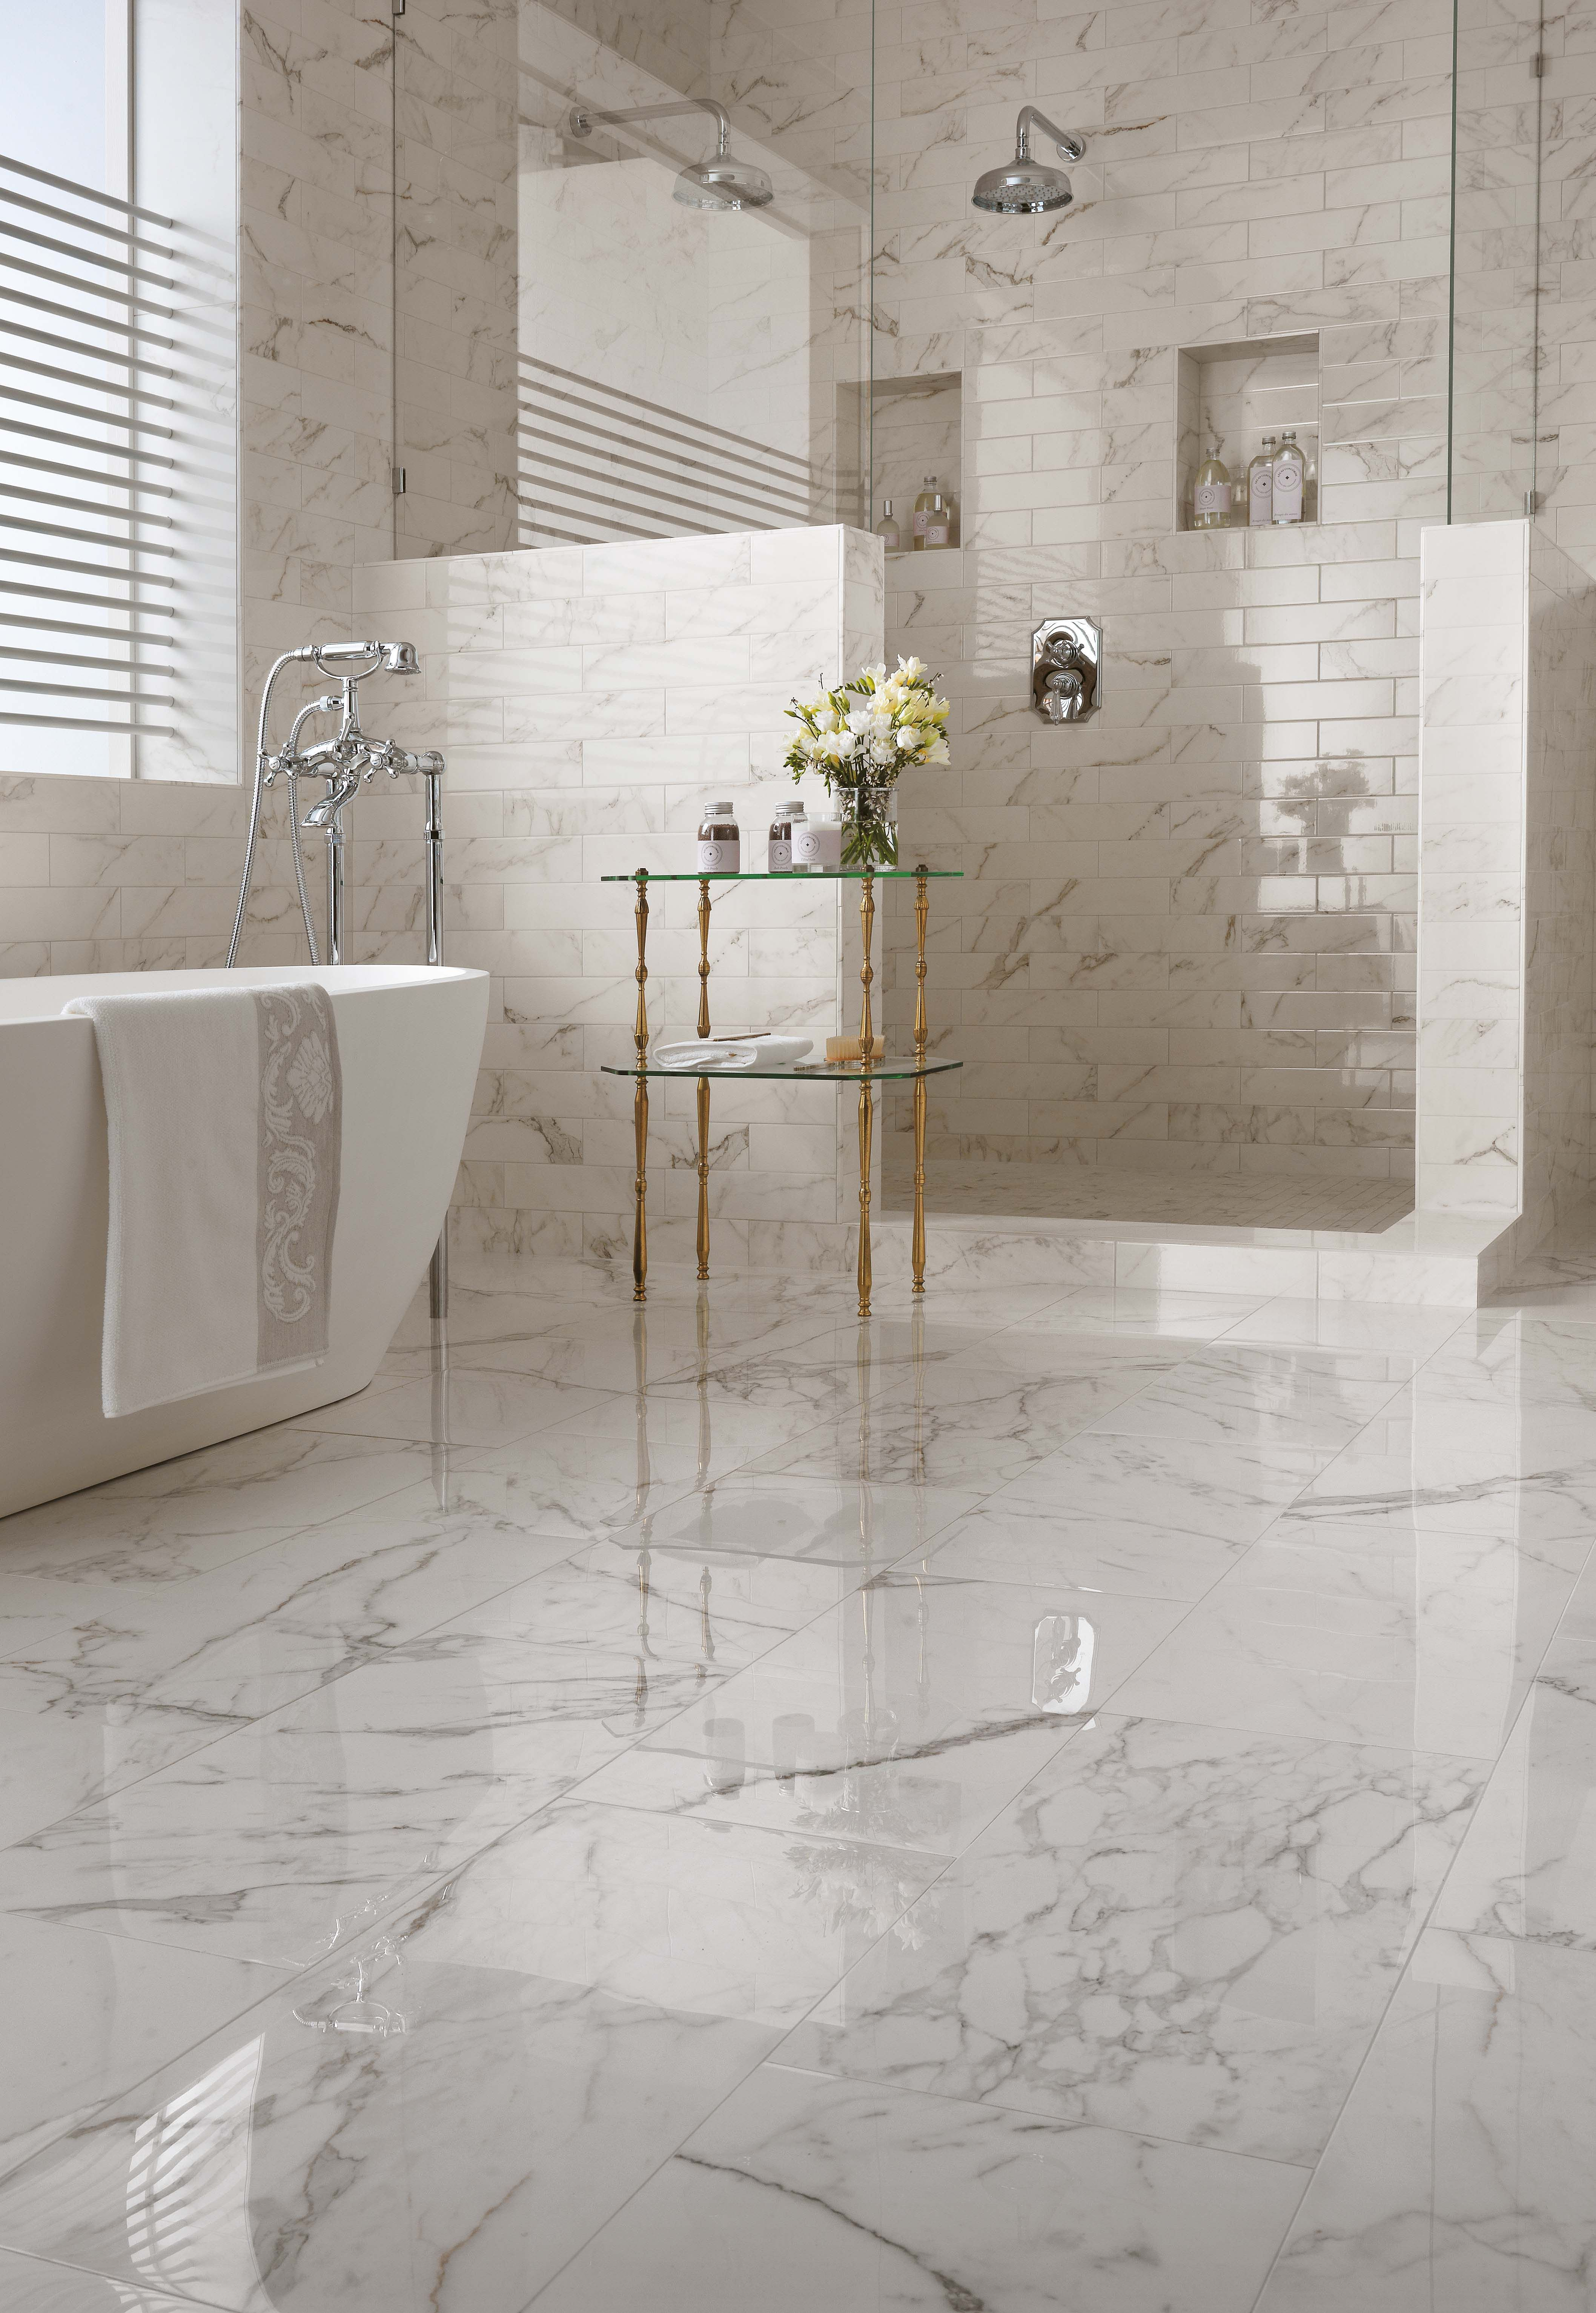 Marble Inspired Tiles For First Class Brilliant And Luminous Walls Bathroom Inspiration Color Bathtub Small Bathroom